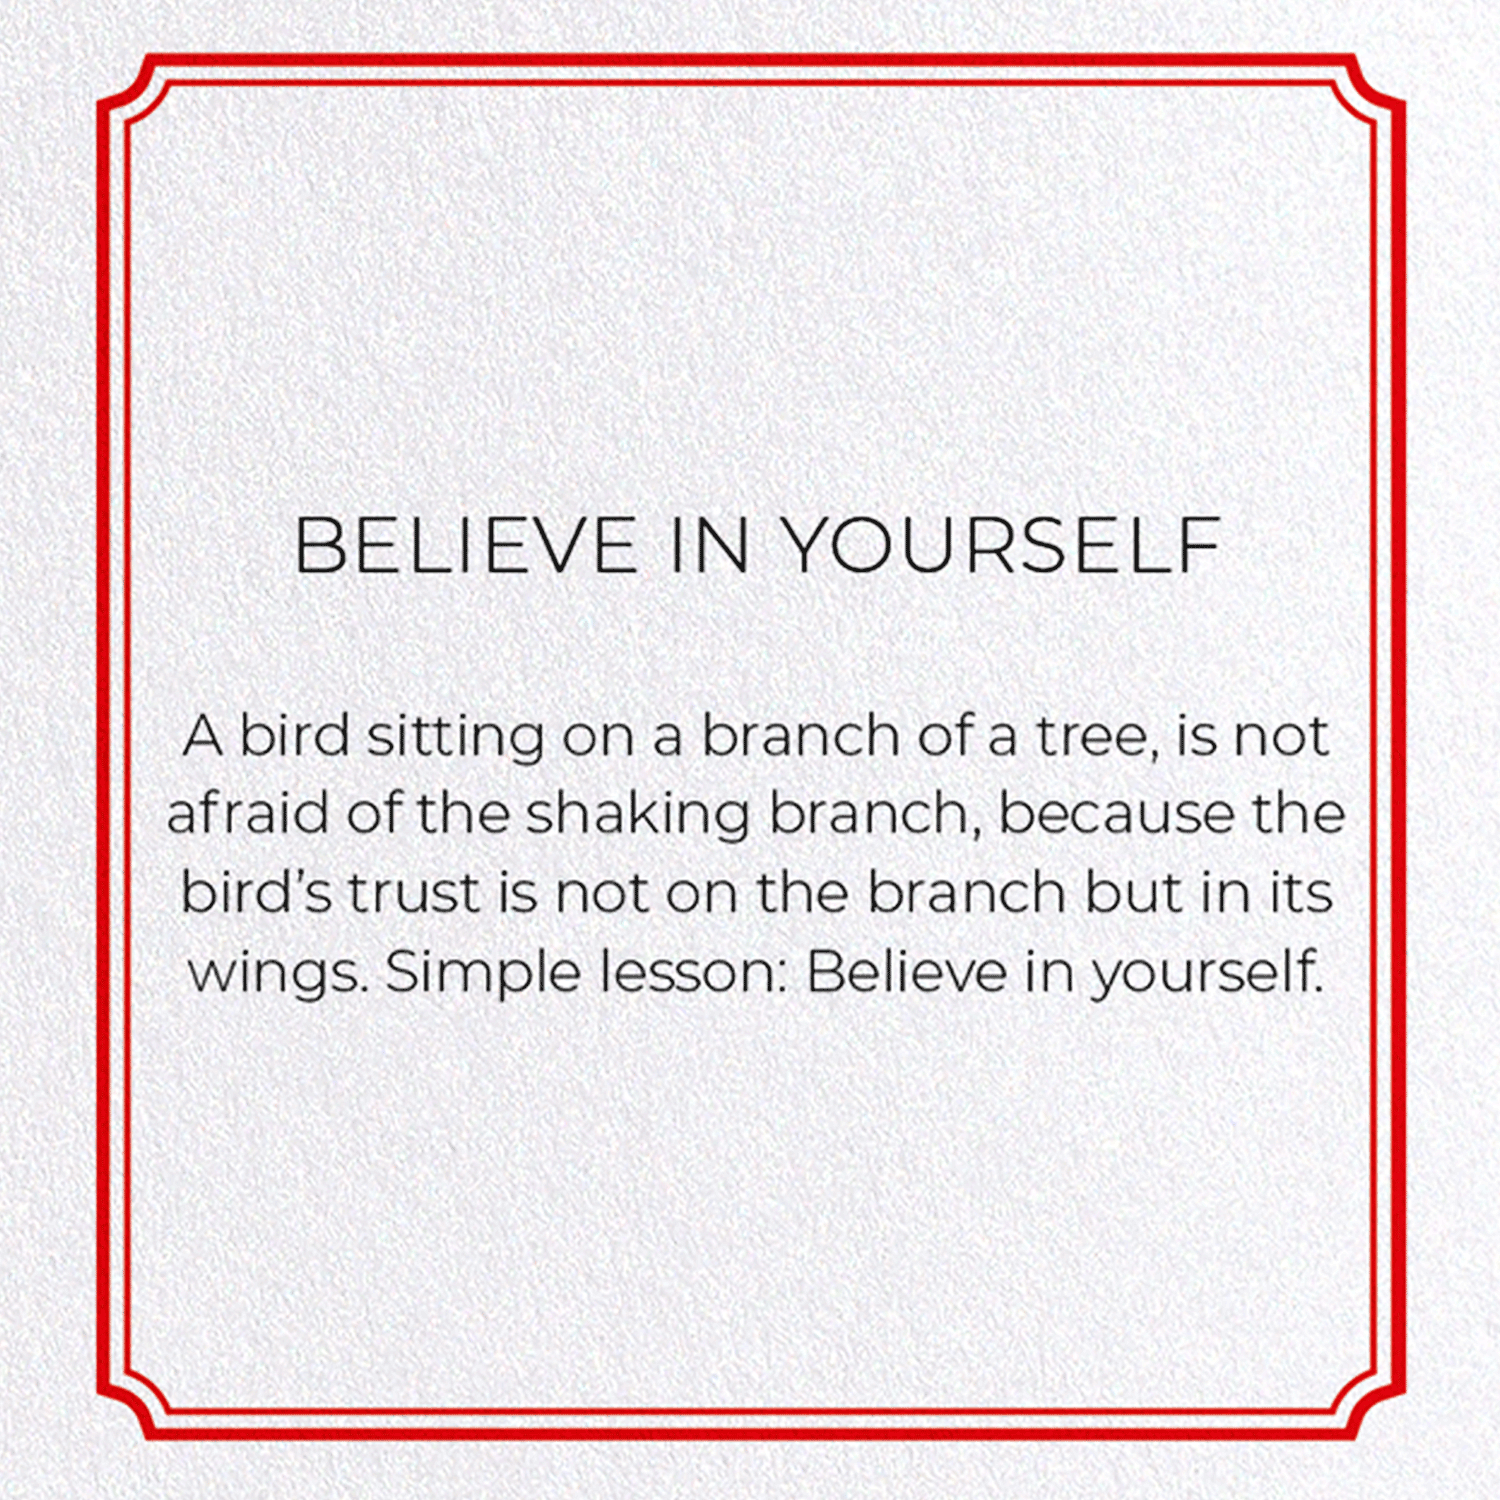 BELIEVE IN YOURSELF: 8xCards